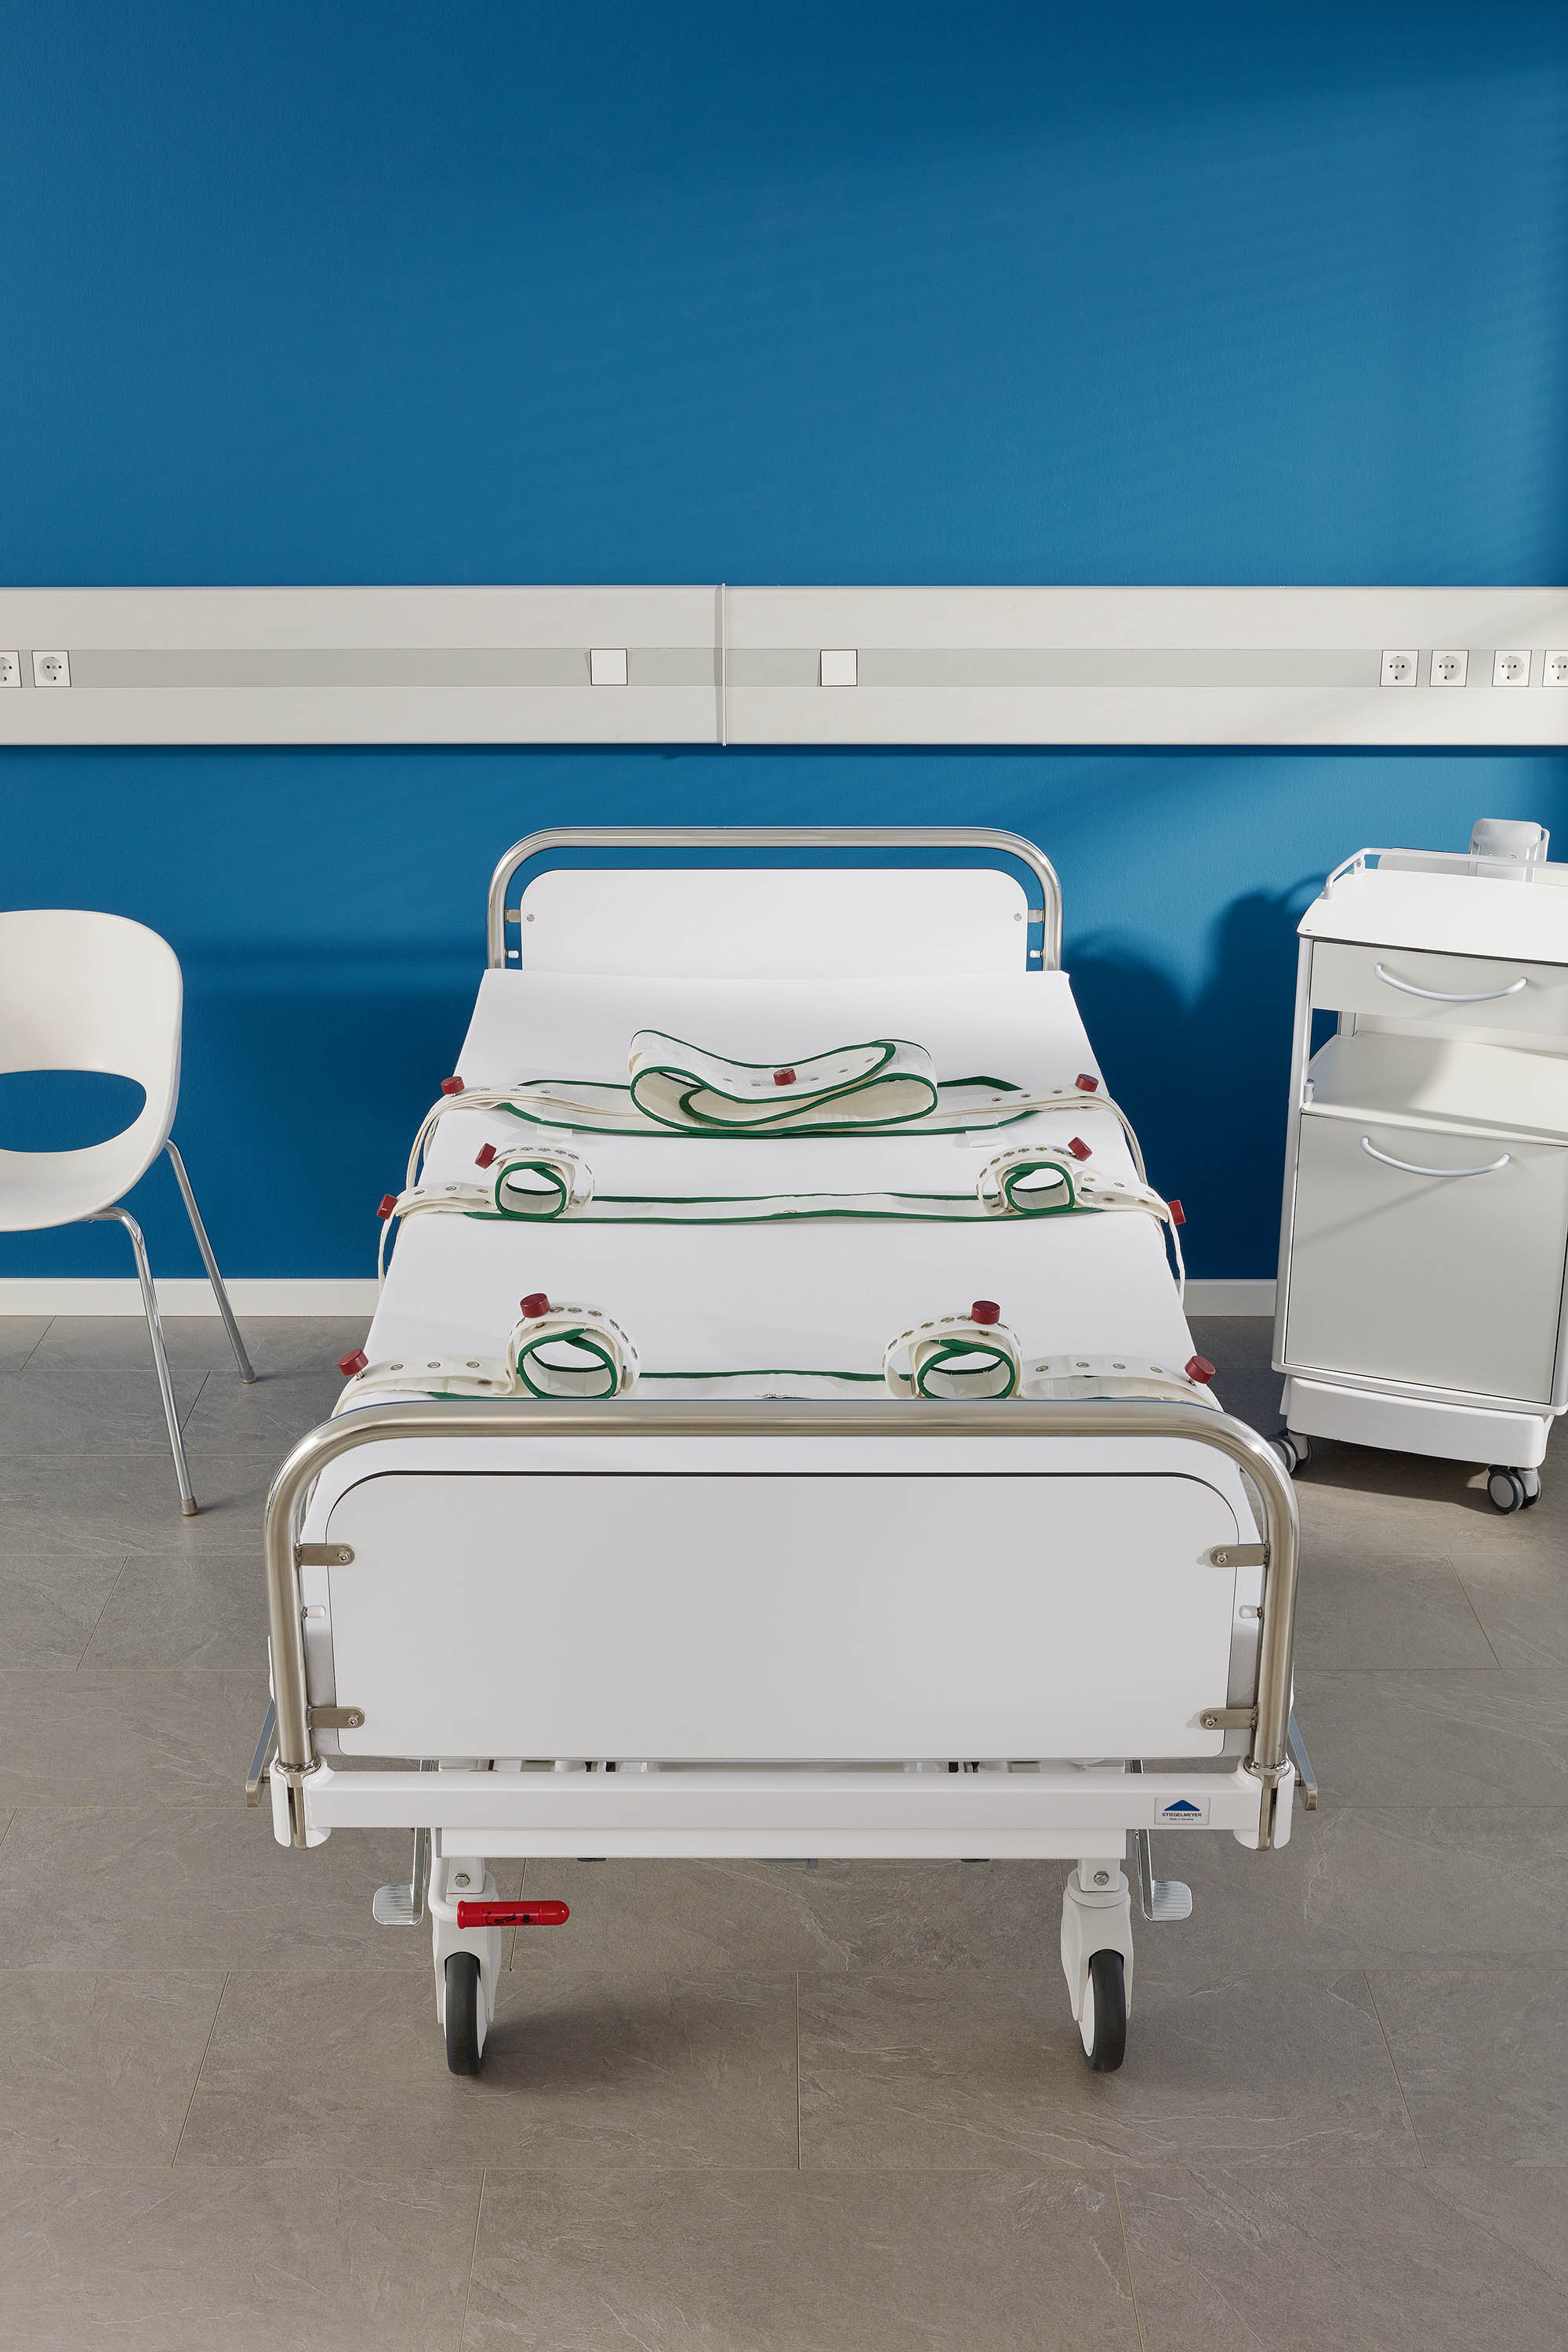 Fixation points for belts on the Deka hospital bed